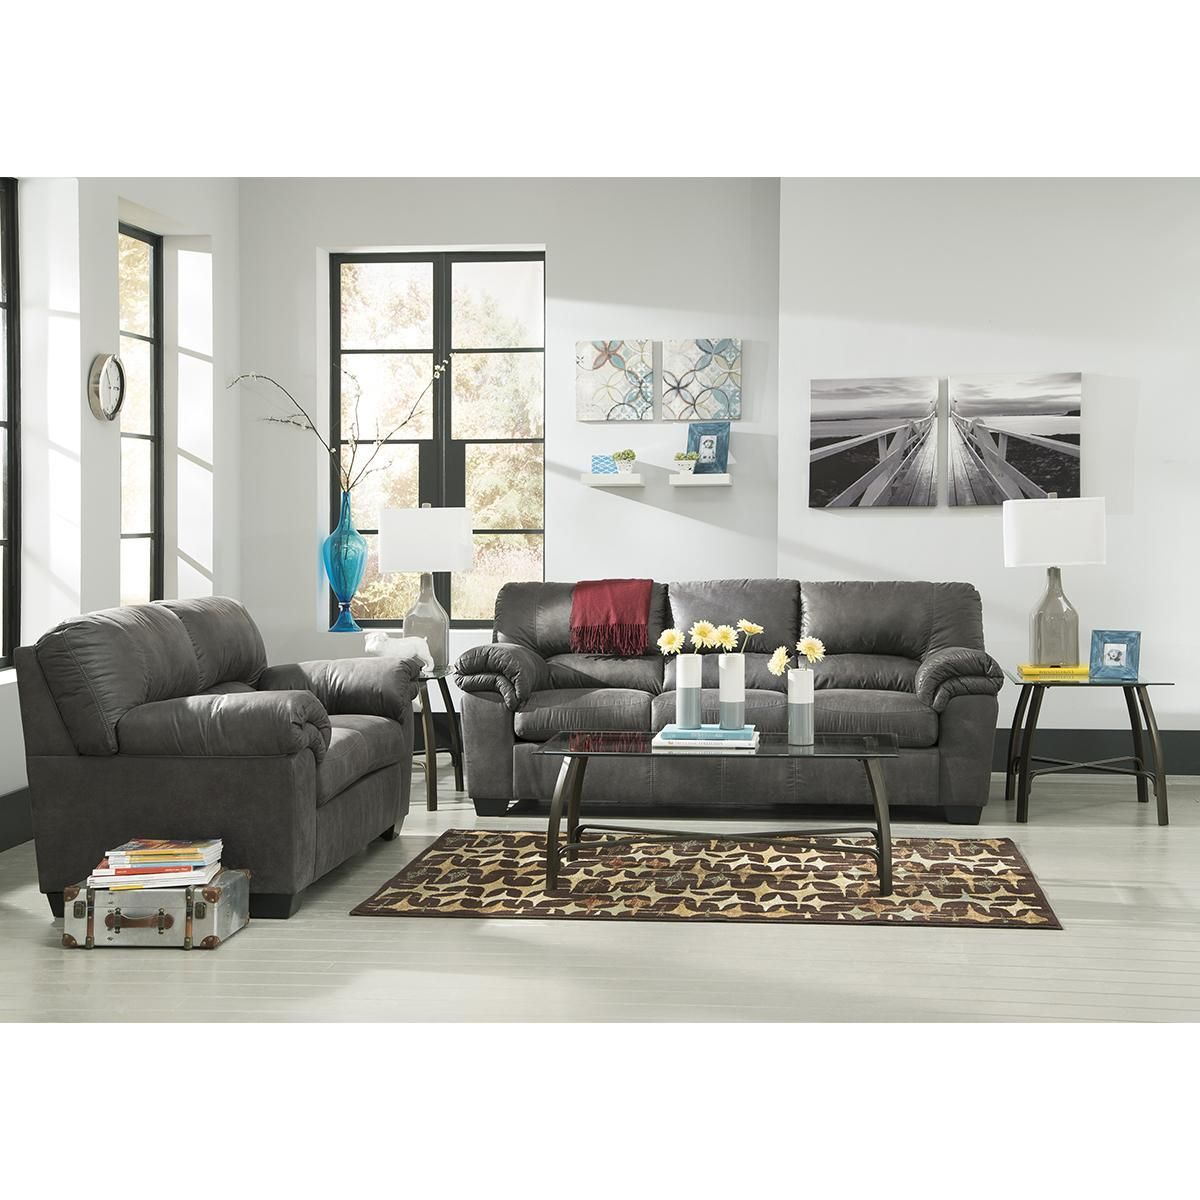 Chenault Brantley Collection Grey Sofa Loveseat Set Sofa And